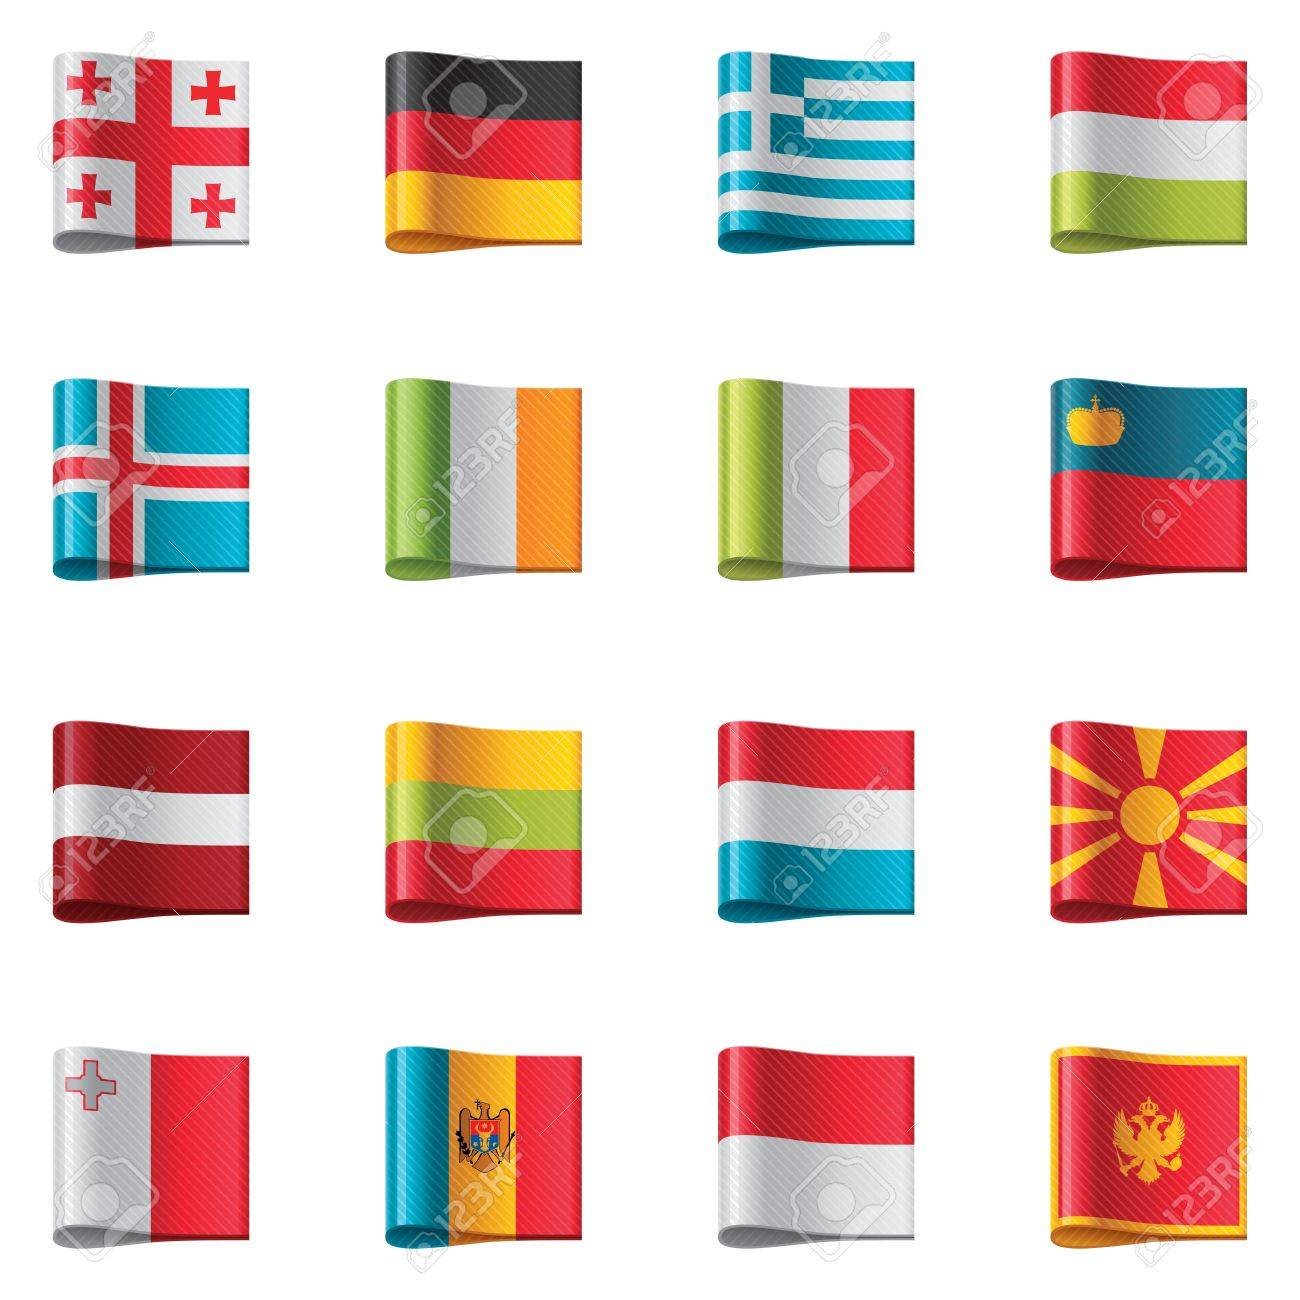 Flags. Europe - 11153482